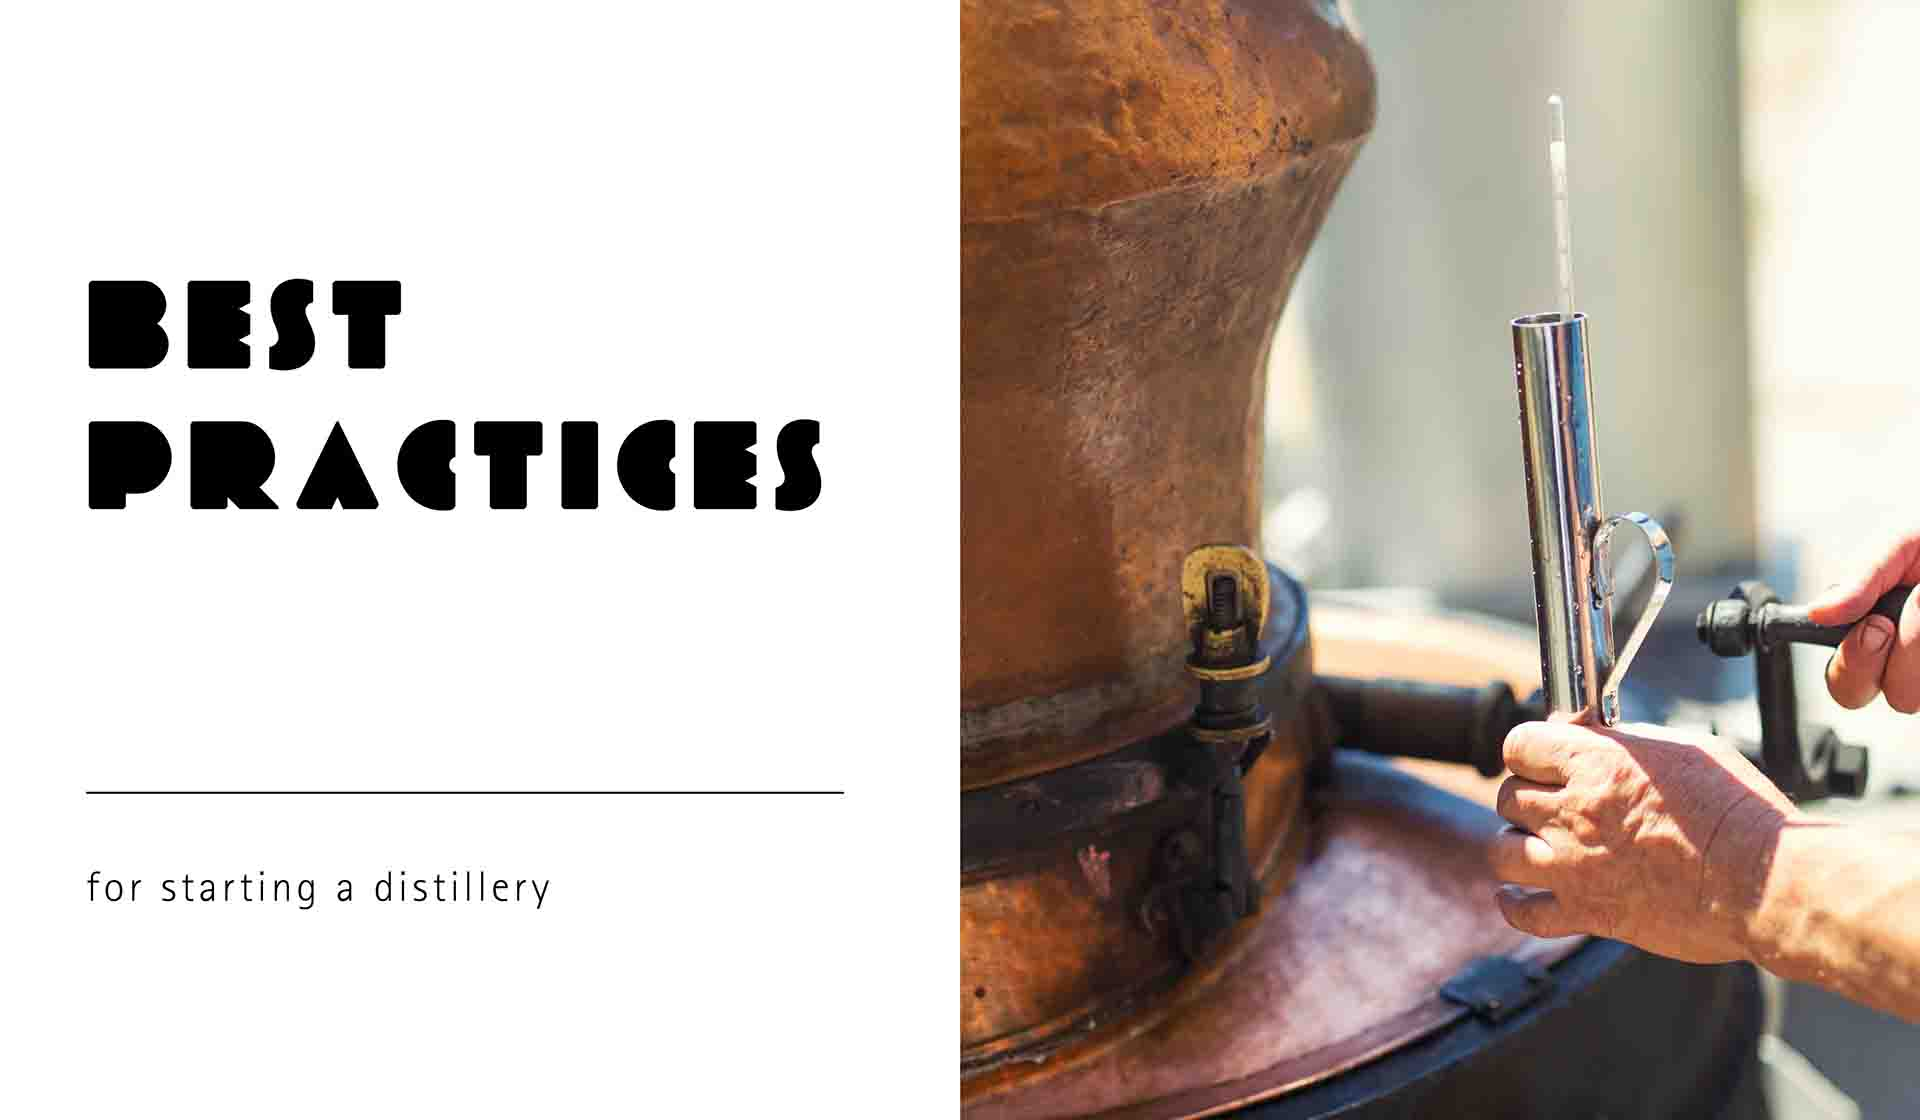 Best Practices for Starting a Distillery